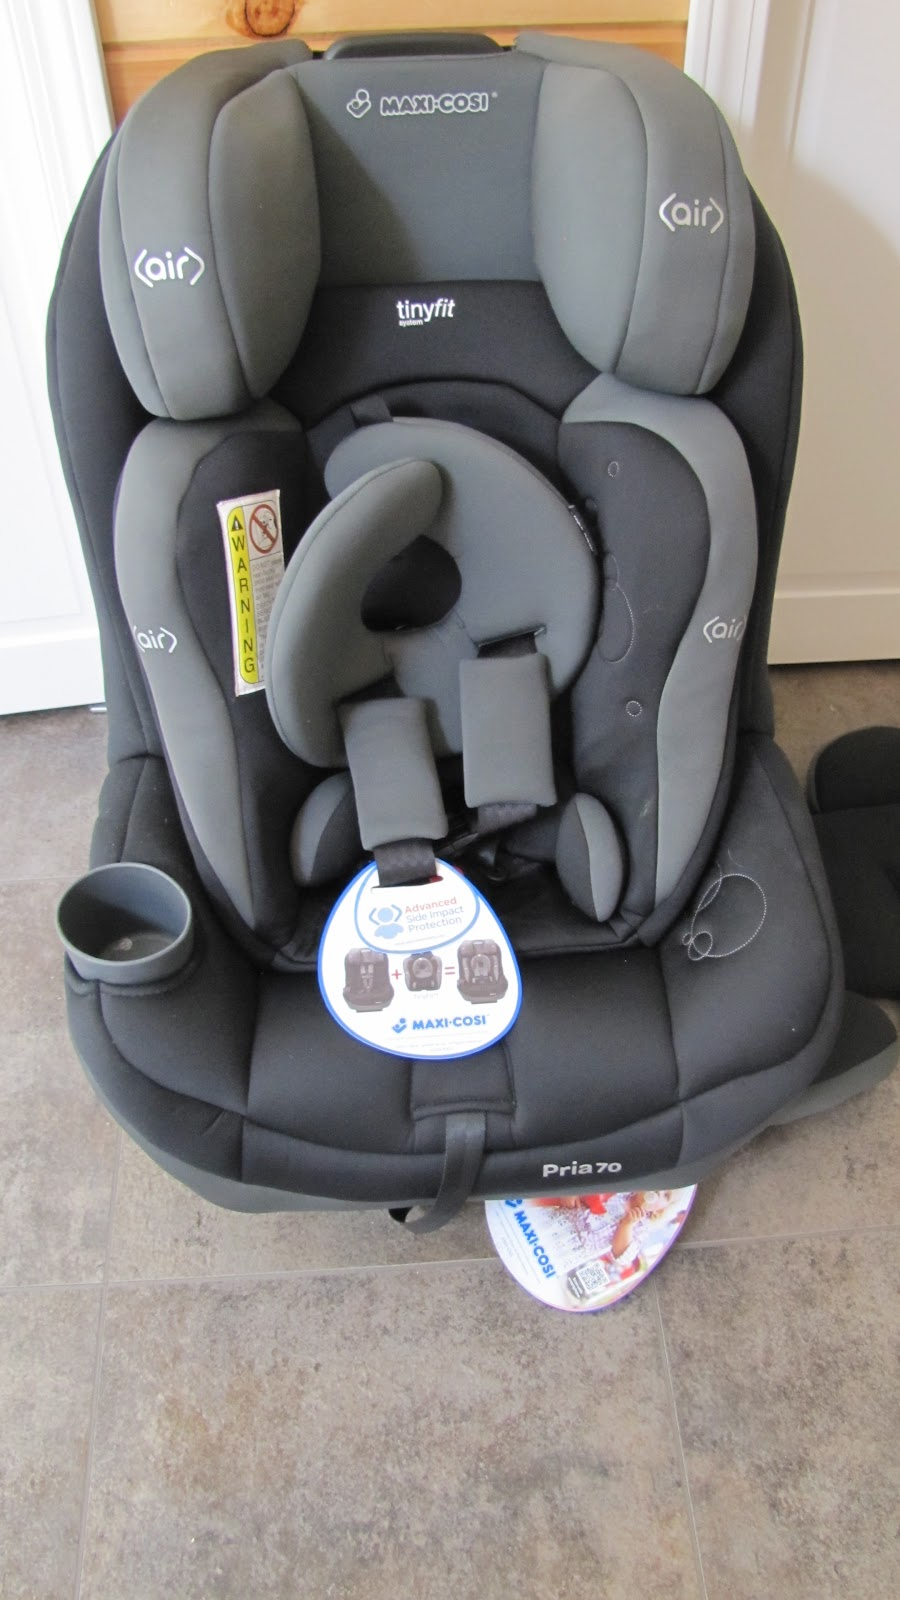 One Thing That Makes This Car Seat Truly Convenient Is How It I Love Its Made To Grow With A Baby And Them Safe Every Step Of The